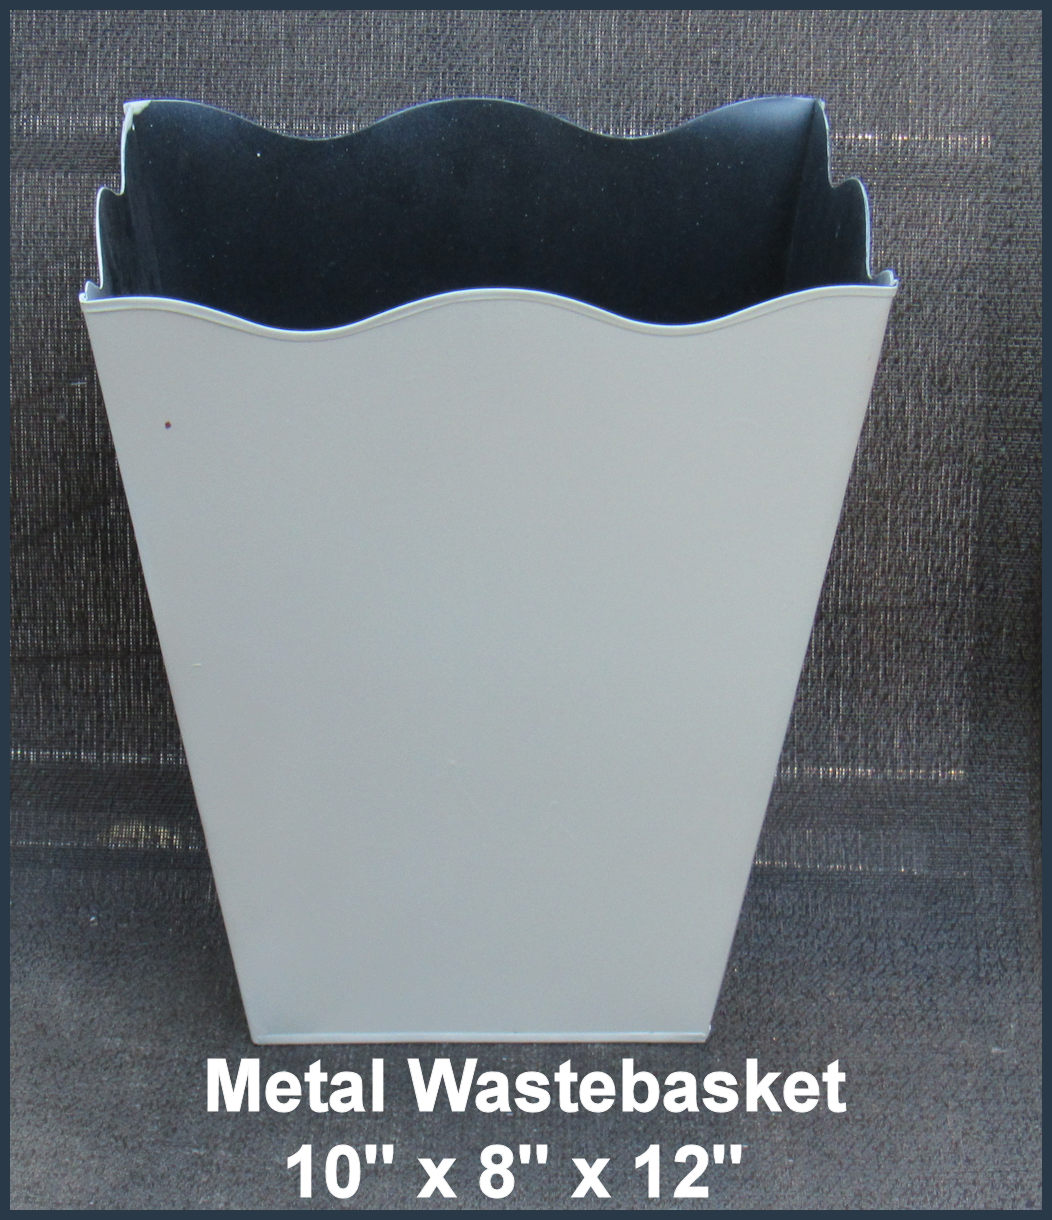 metal-wastebasket-12-tall-20170928.jpg